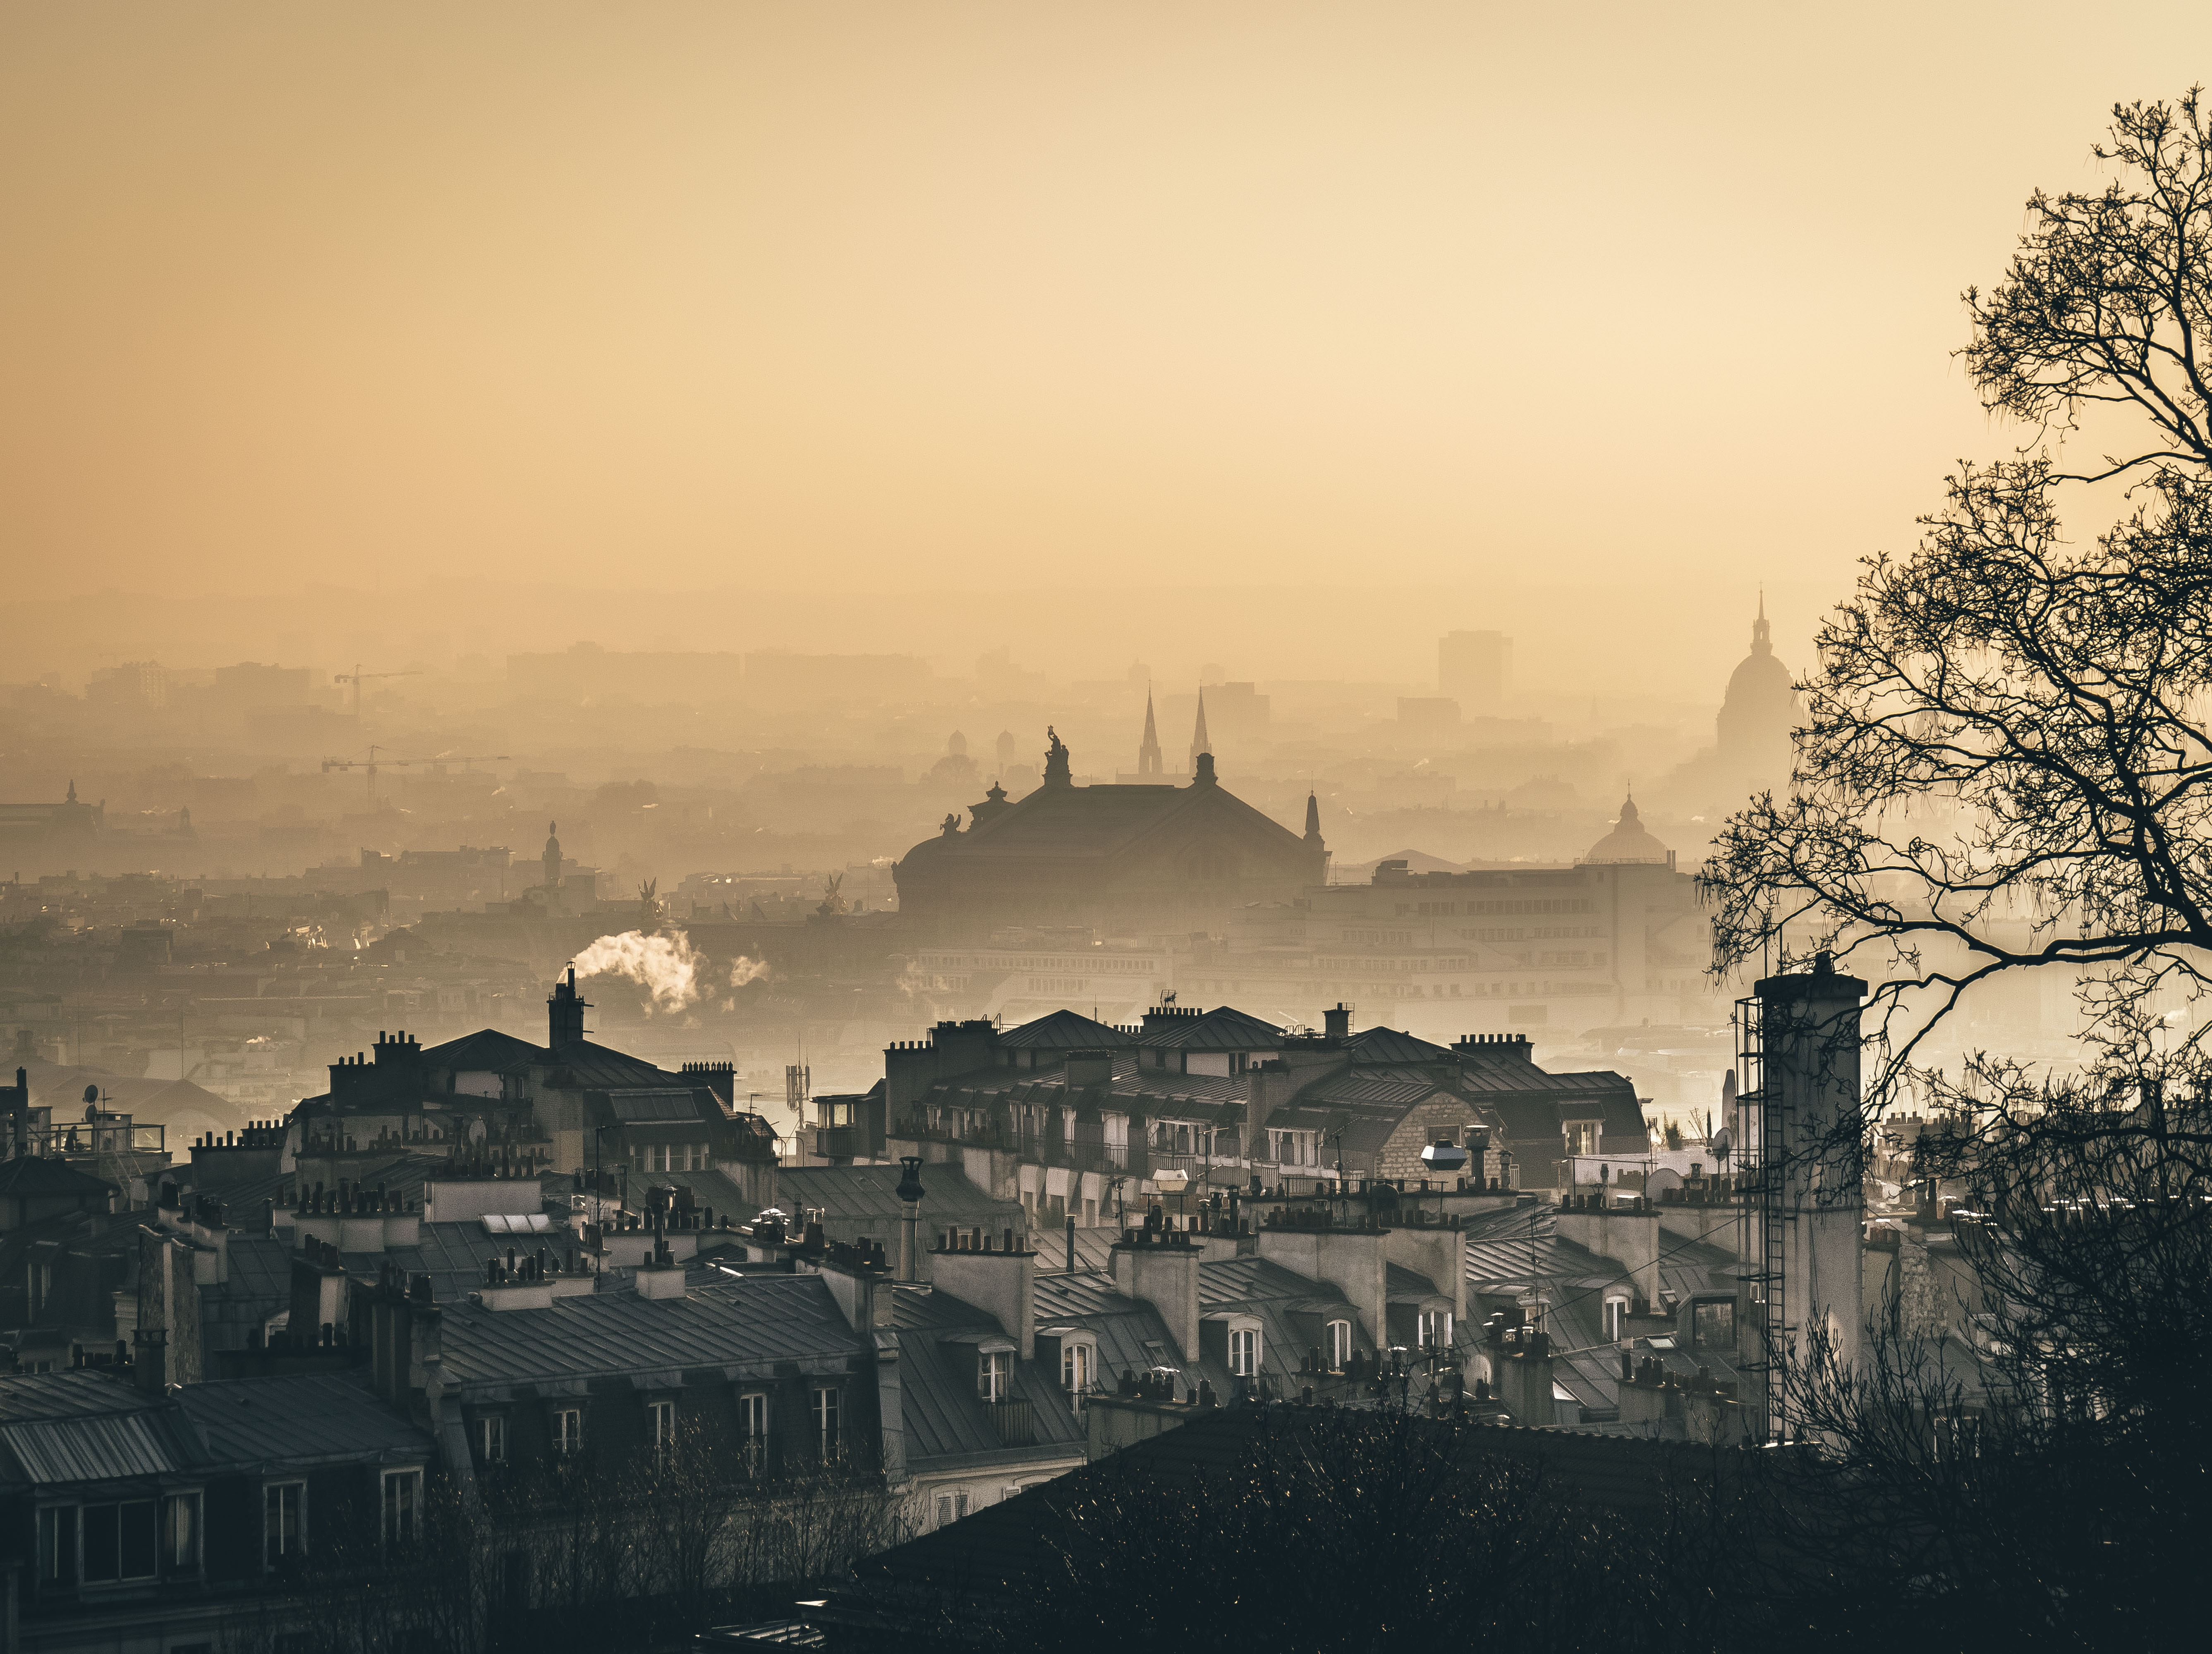 The beautiful architecture of Paris shrouded in mist or fog at sunset